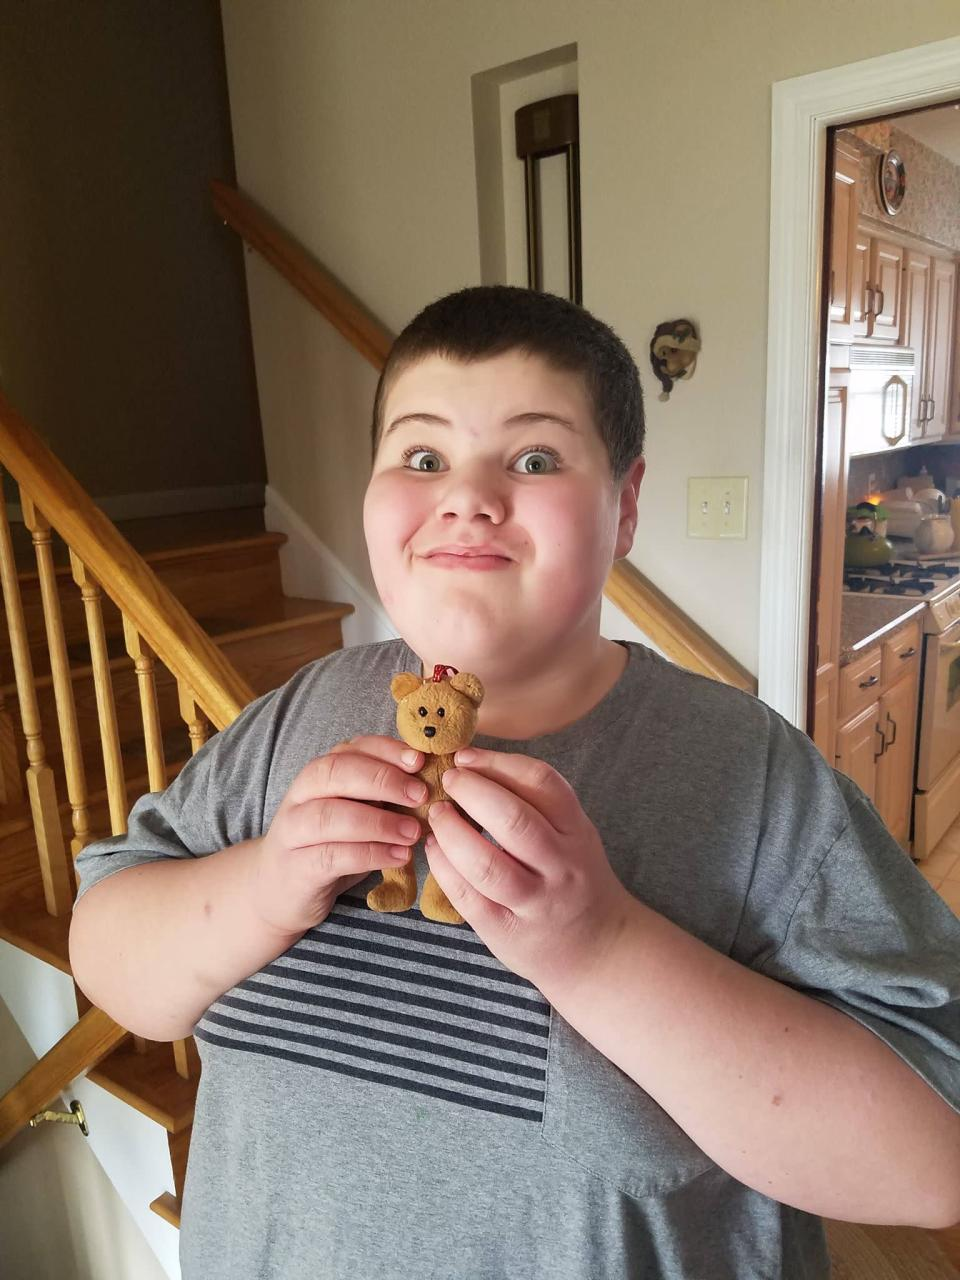 Ryan Paul, a 12-year-old with autism, poses with his teddy bear, Freddy. (Photo: Bob Paul)